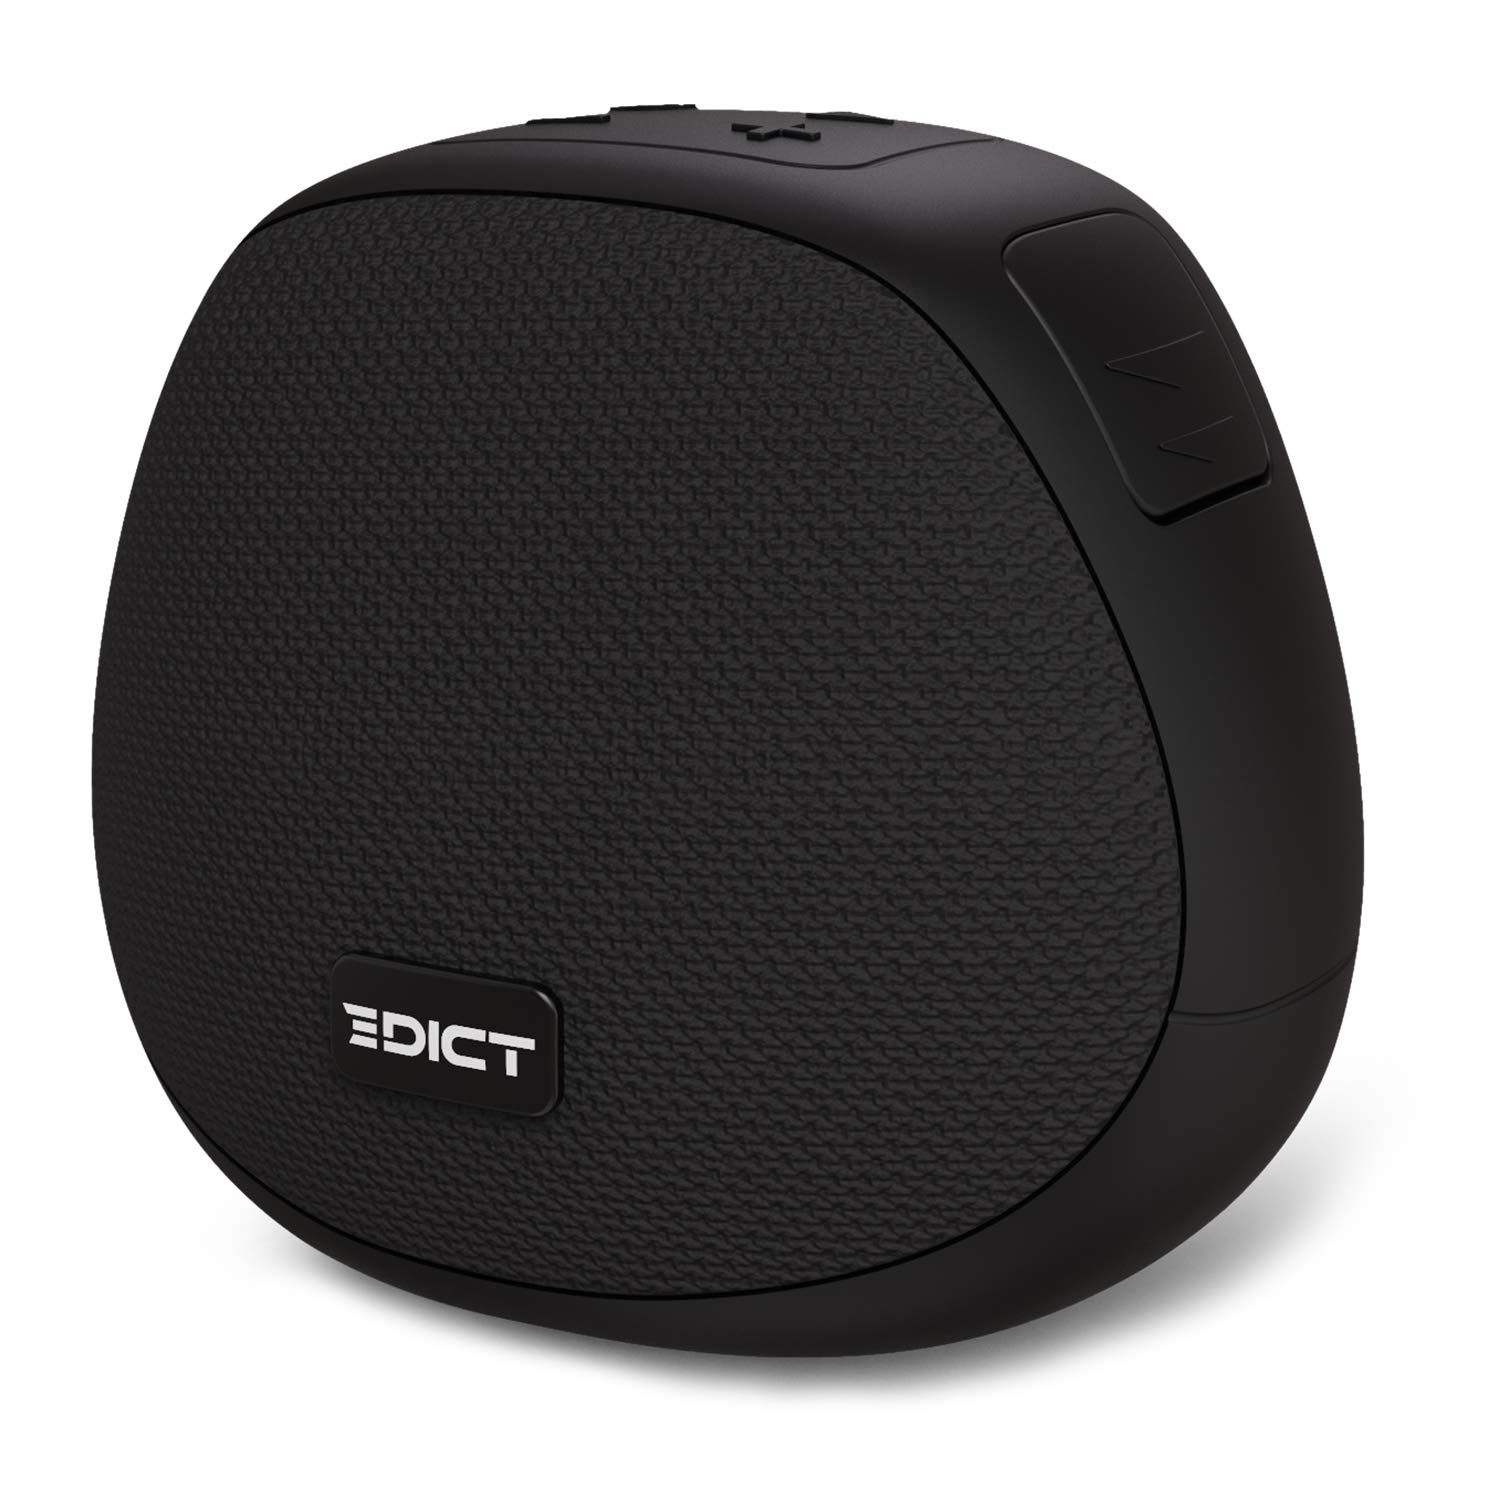 EDICT by Boat ESP01 Wireless Speaker Launched in India 2020